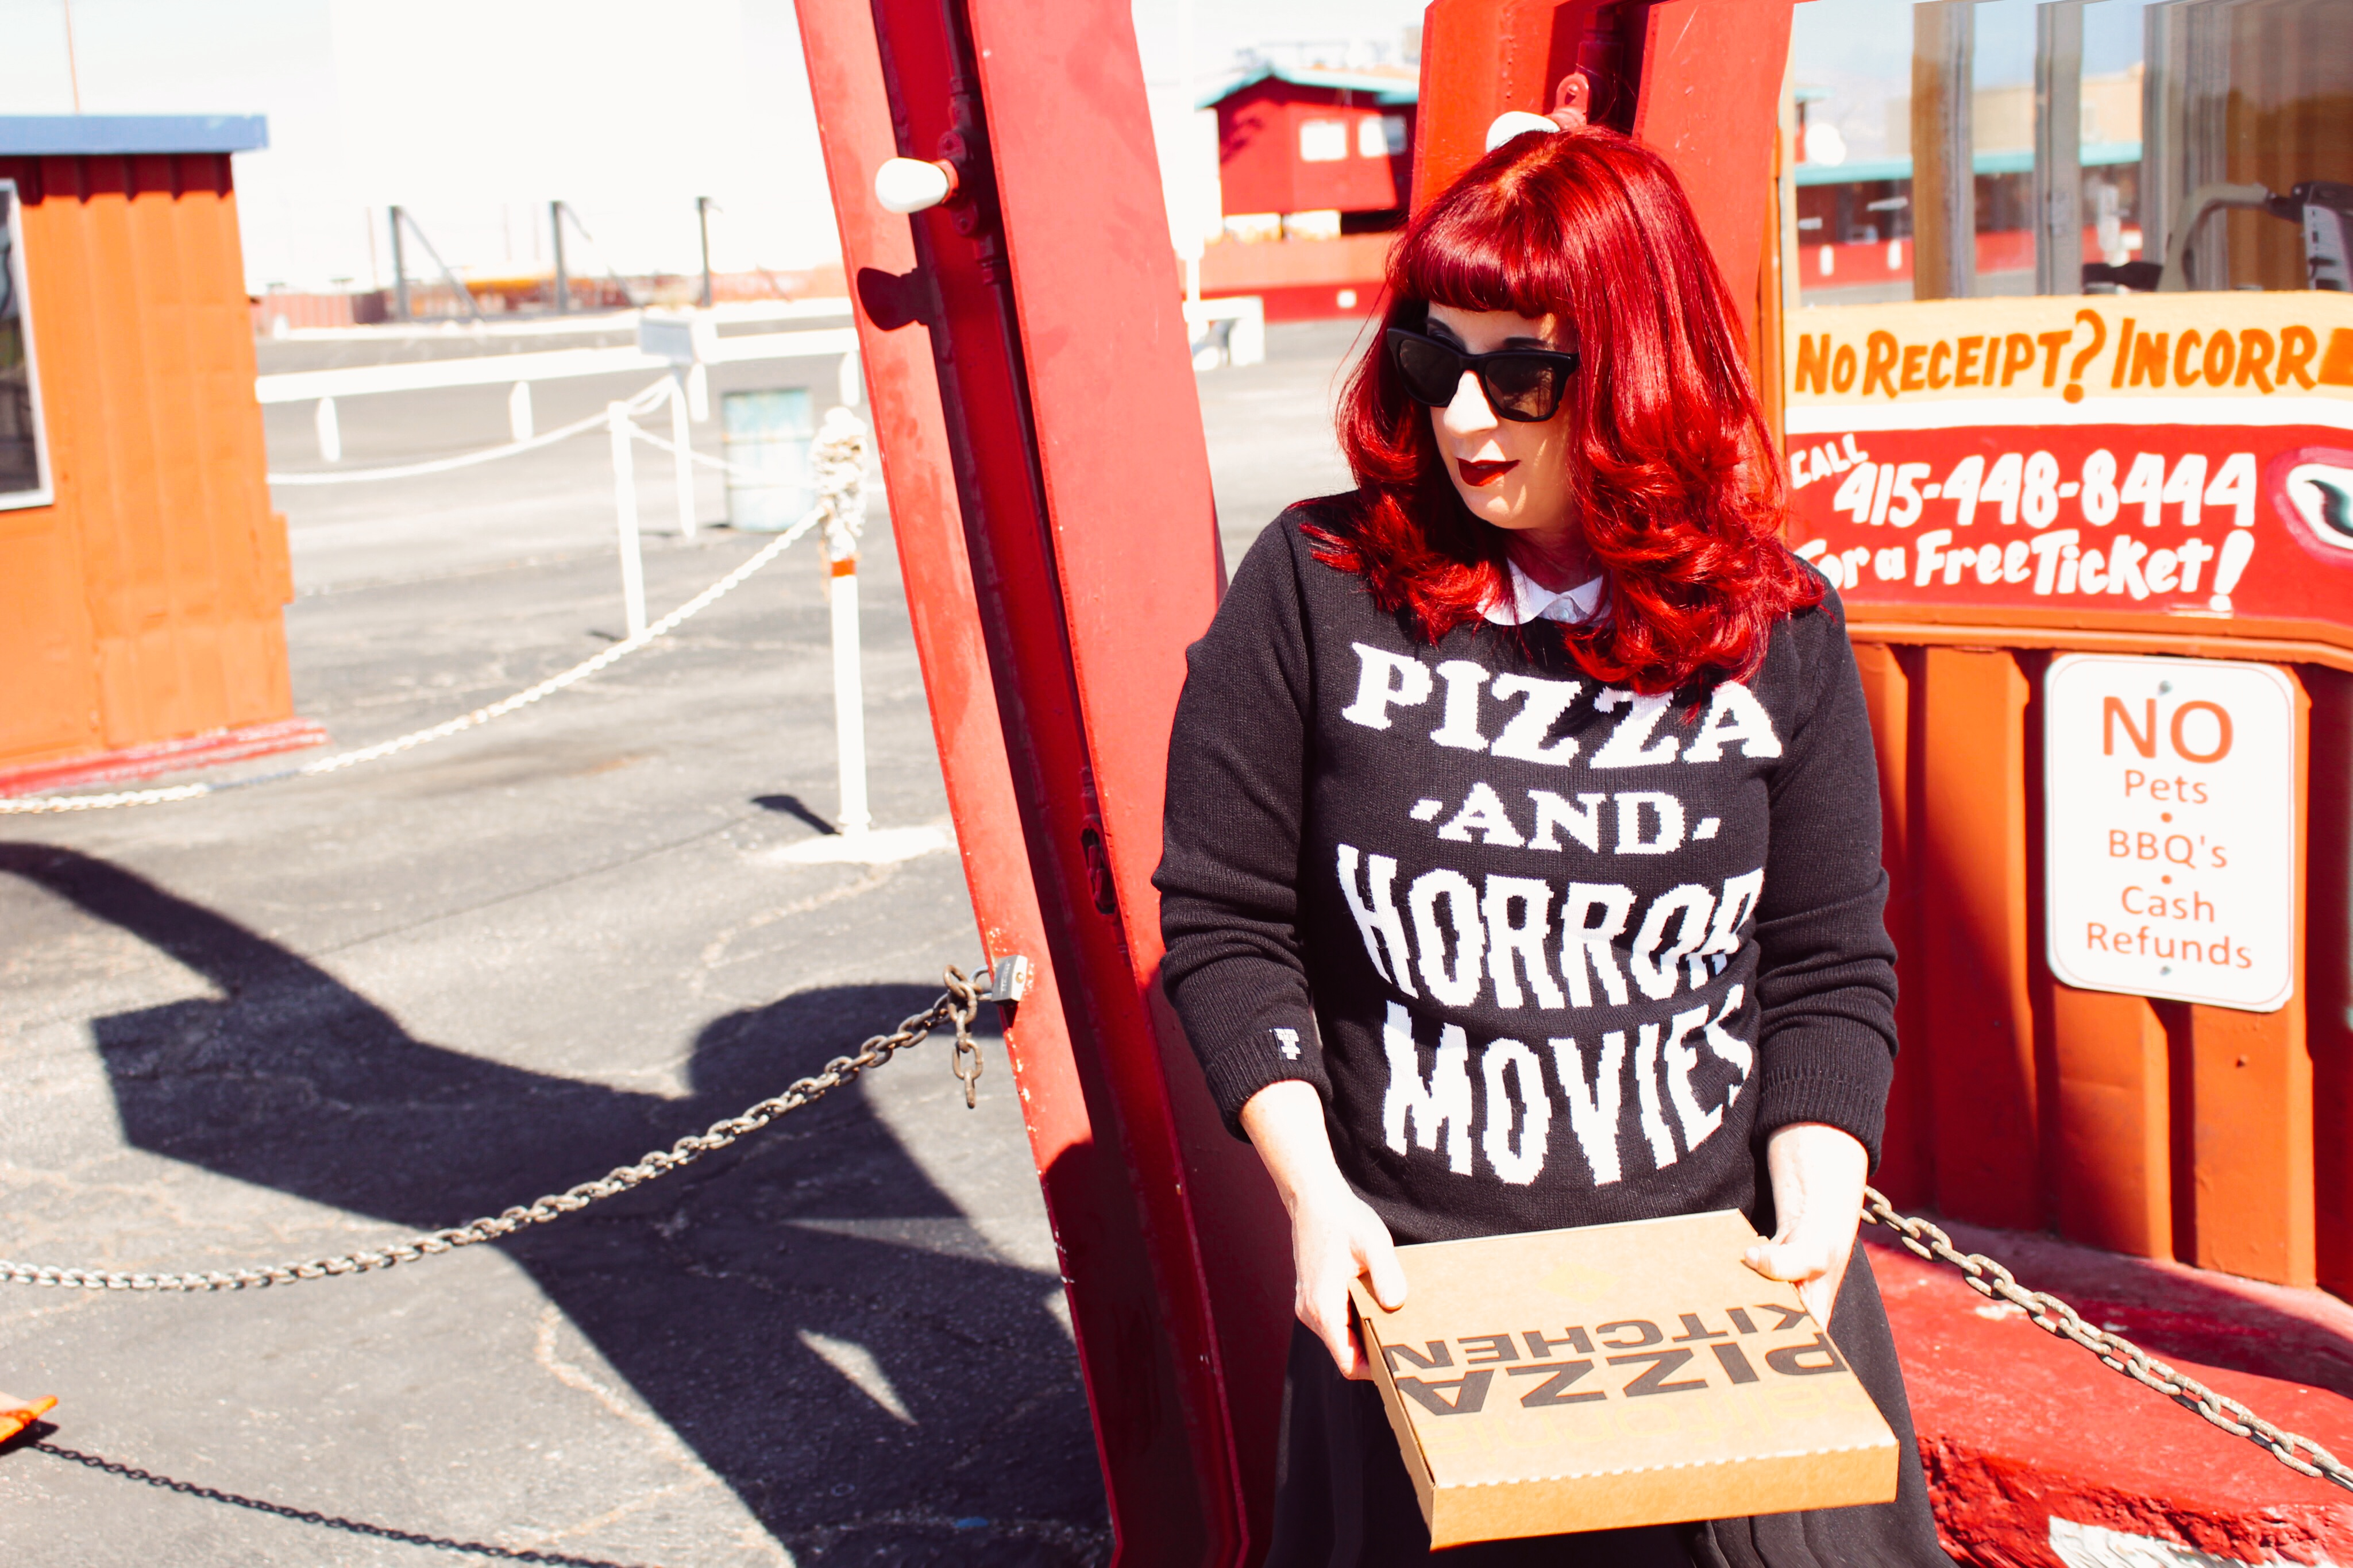 Pizza and Horror Movies with California Pizza Kitchen